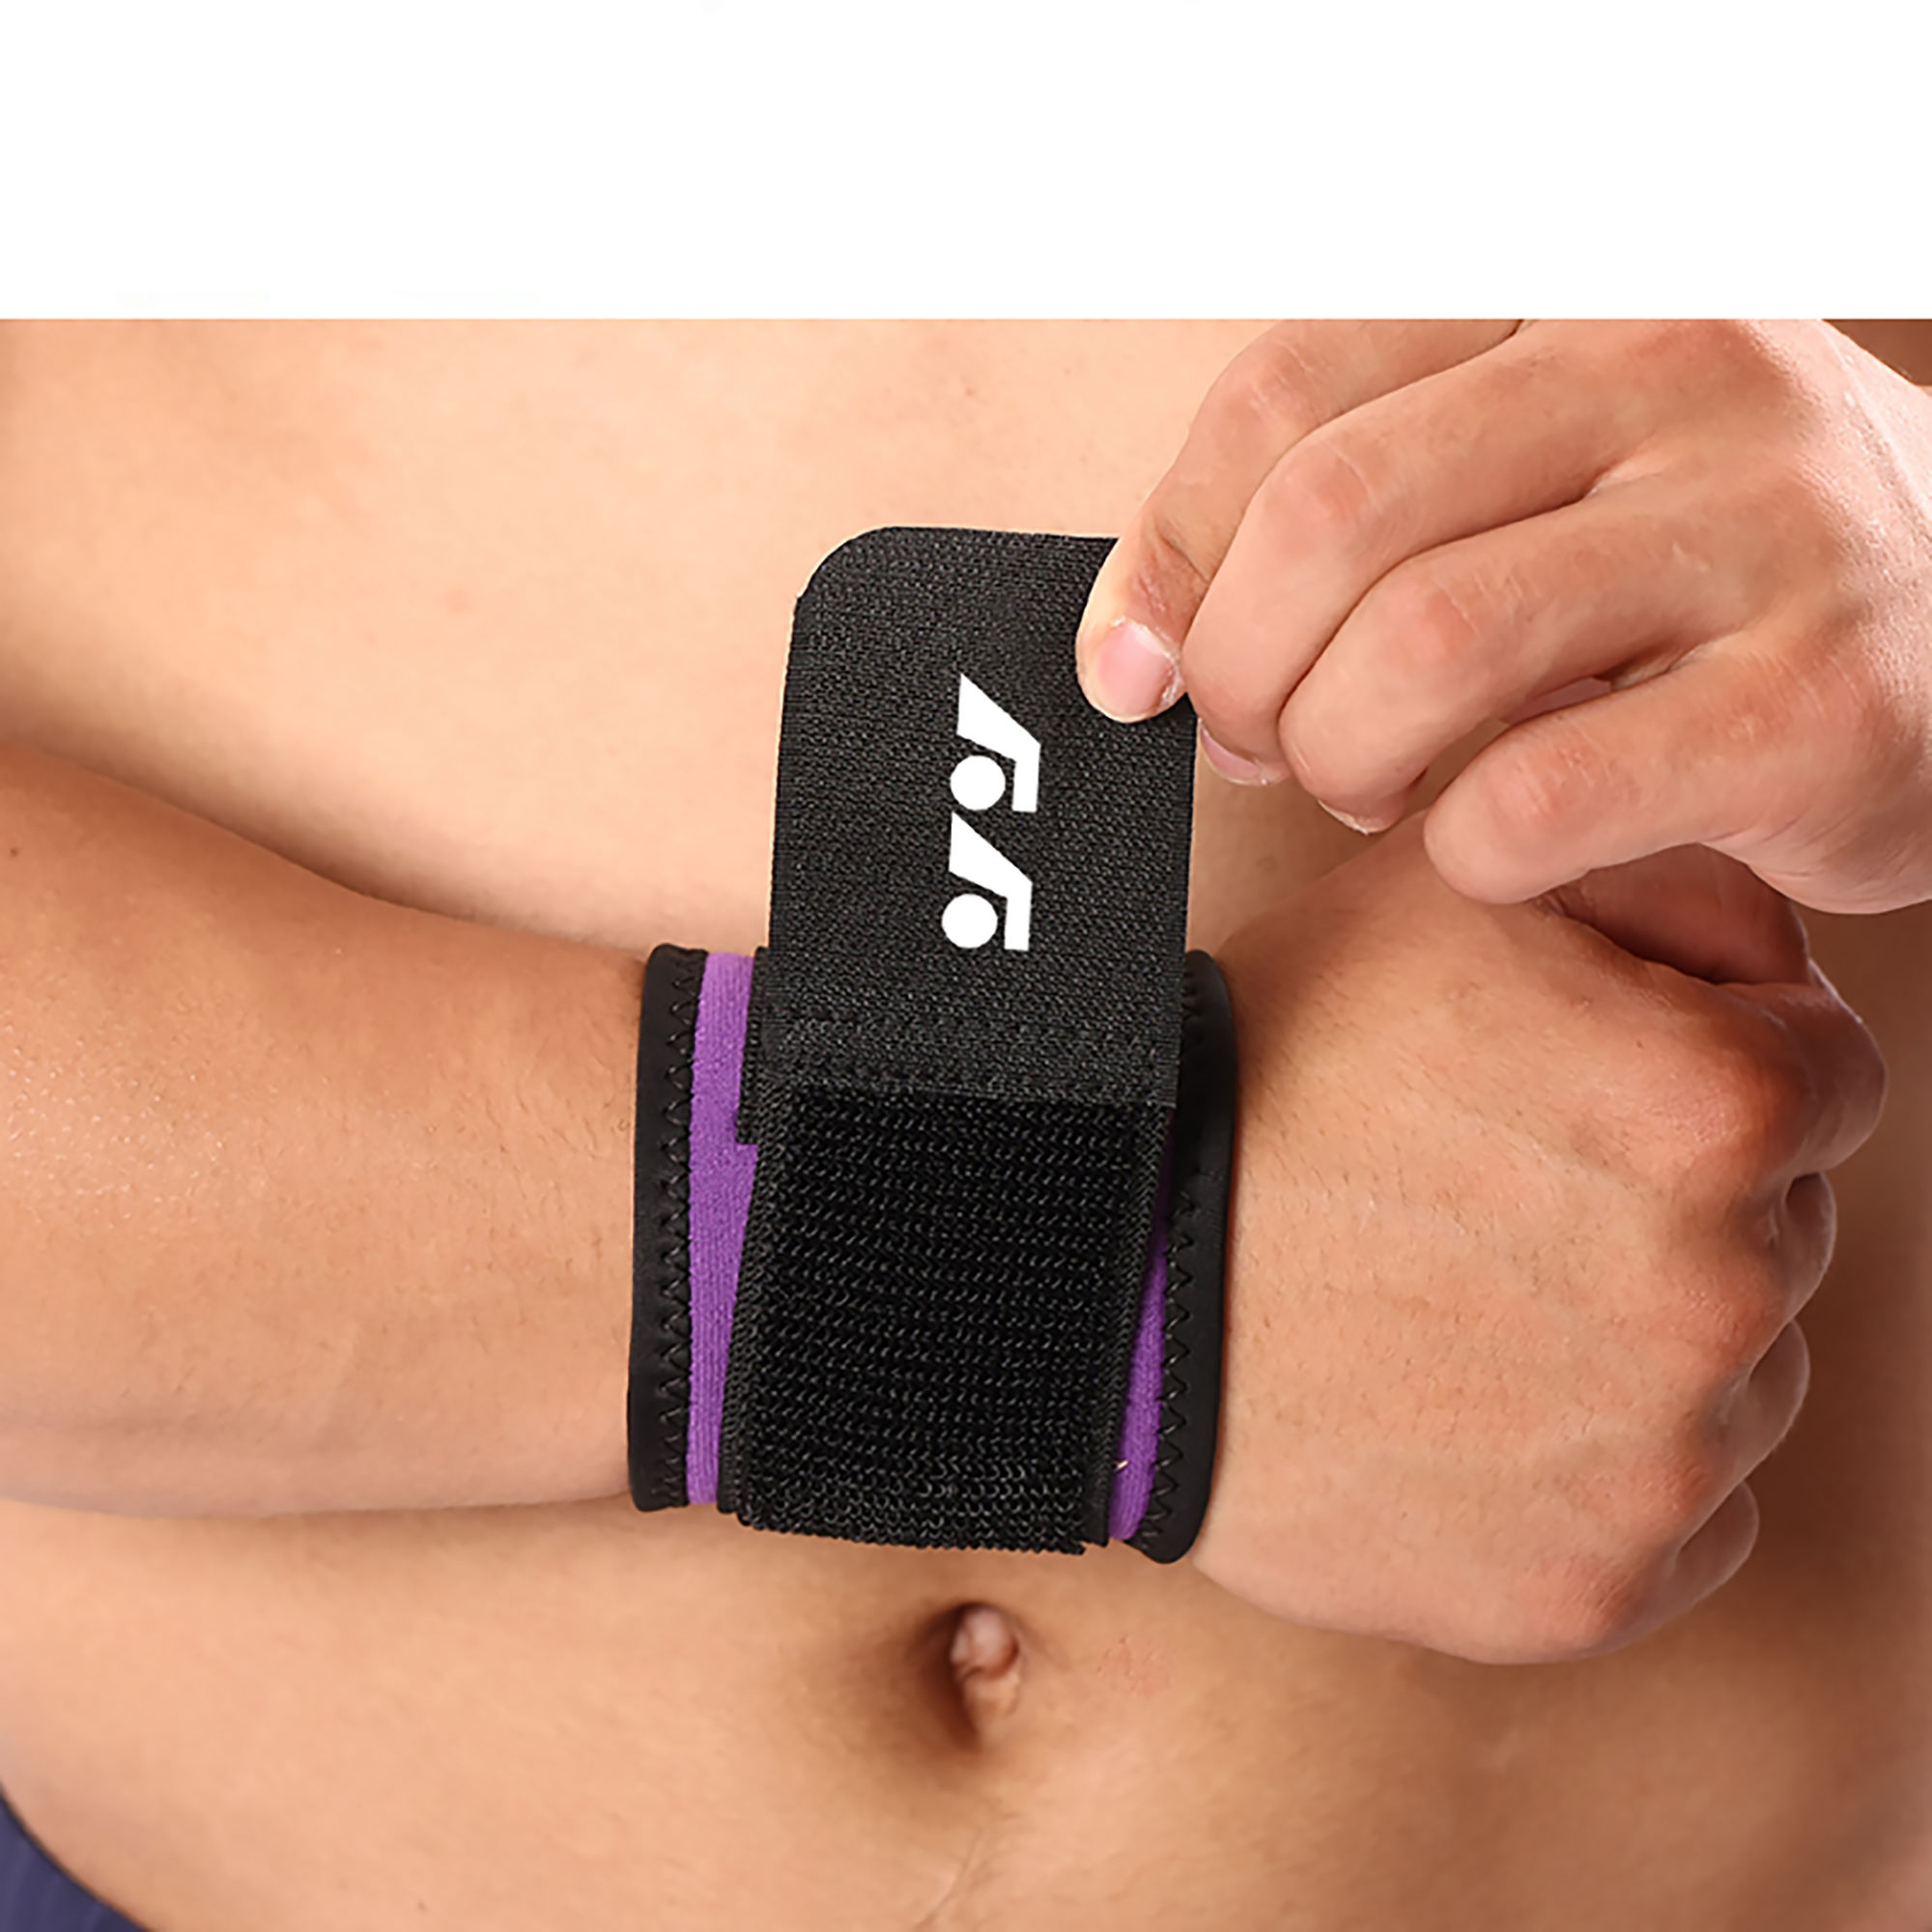 Custom orthopedic wristbands wrist support brace